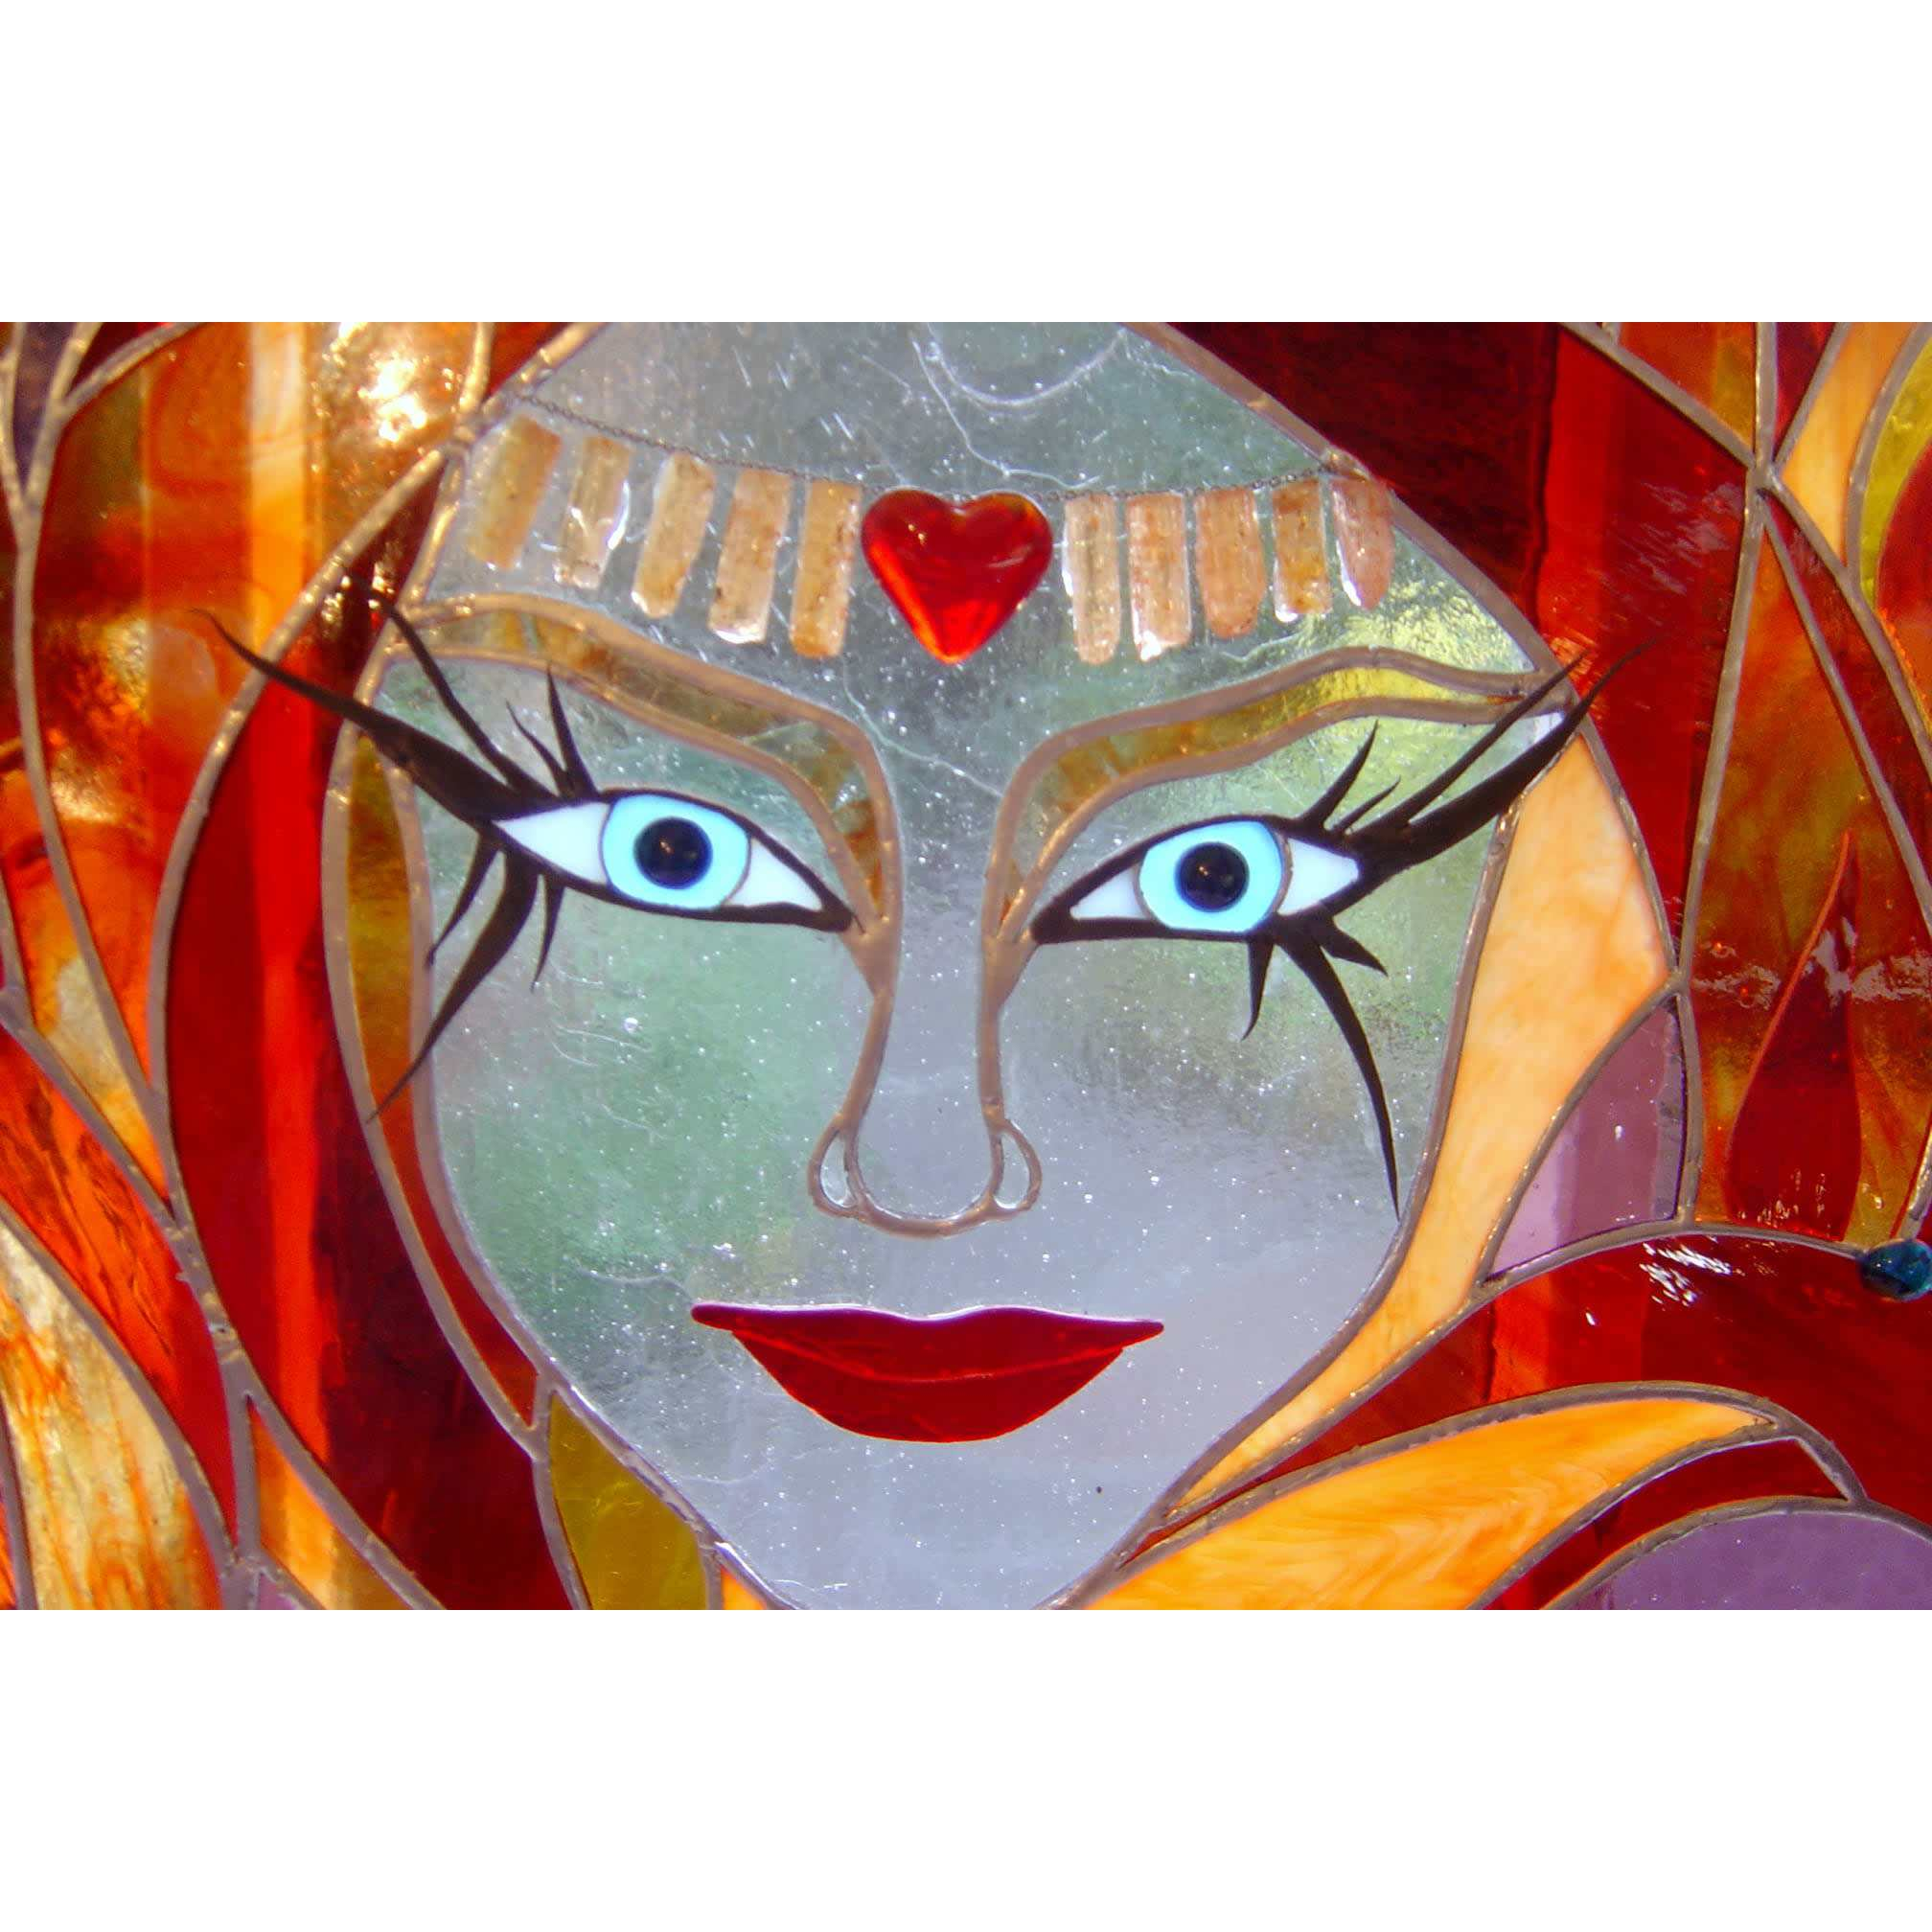 Art Glass by Design - Frome, Somerset BA11 2AB - 07854 539235 | ShowMeLocal.com